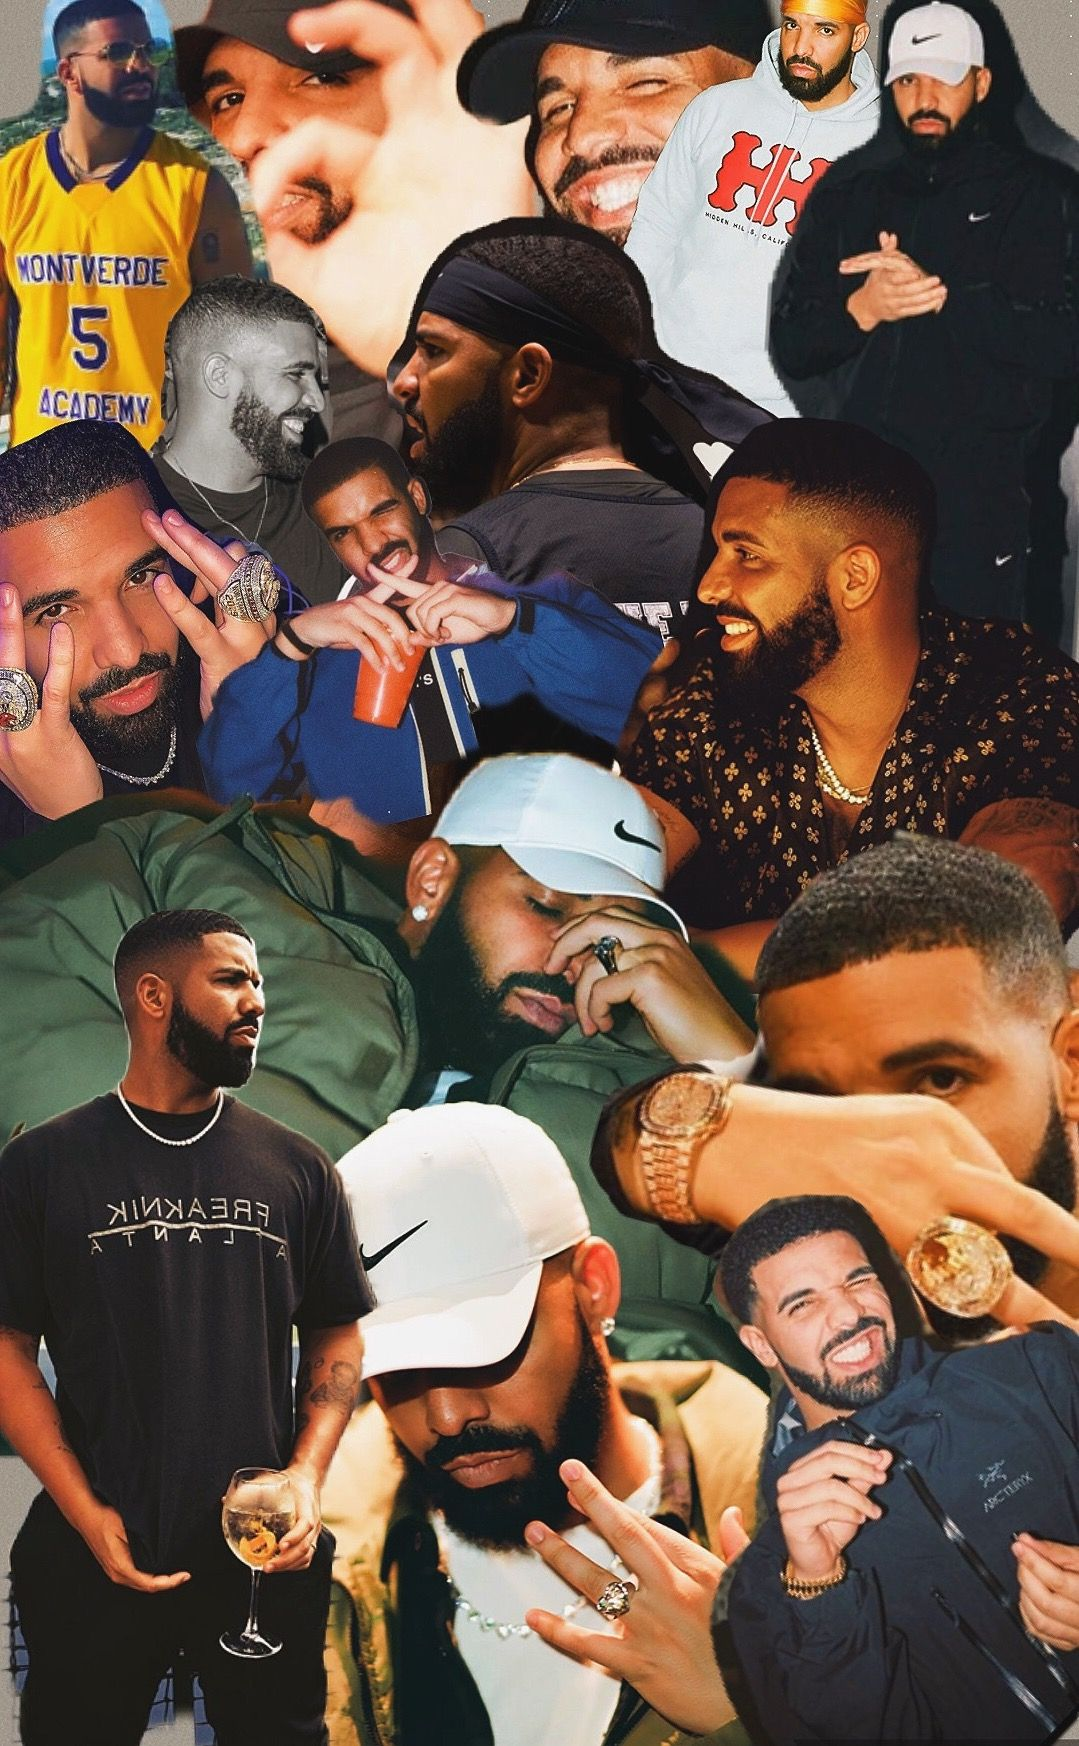 Collage, drake, drizzy in 2020 Drake drizzy, Aubrey